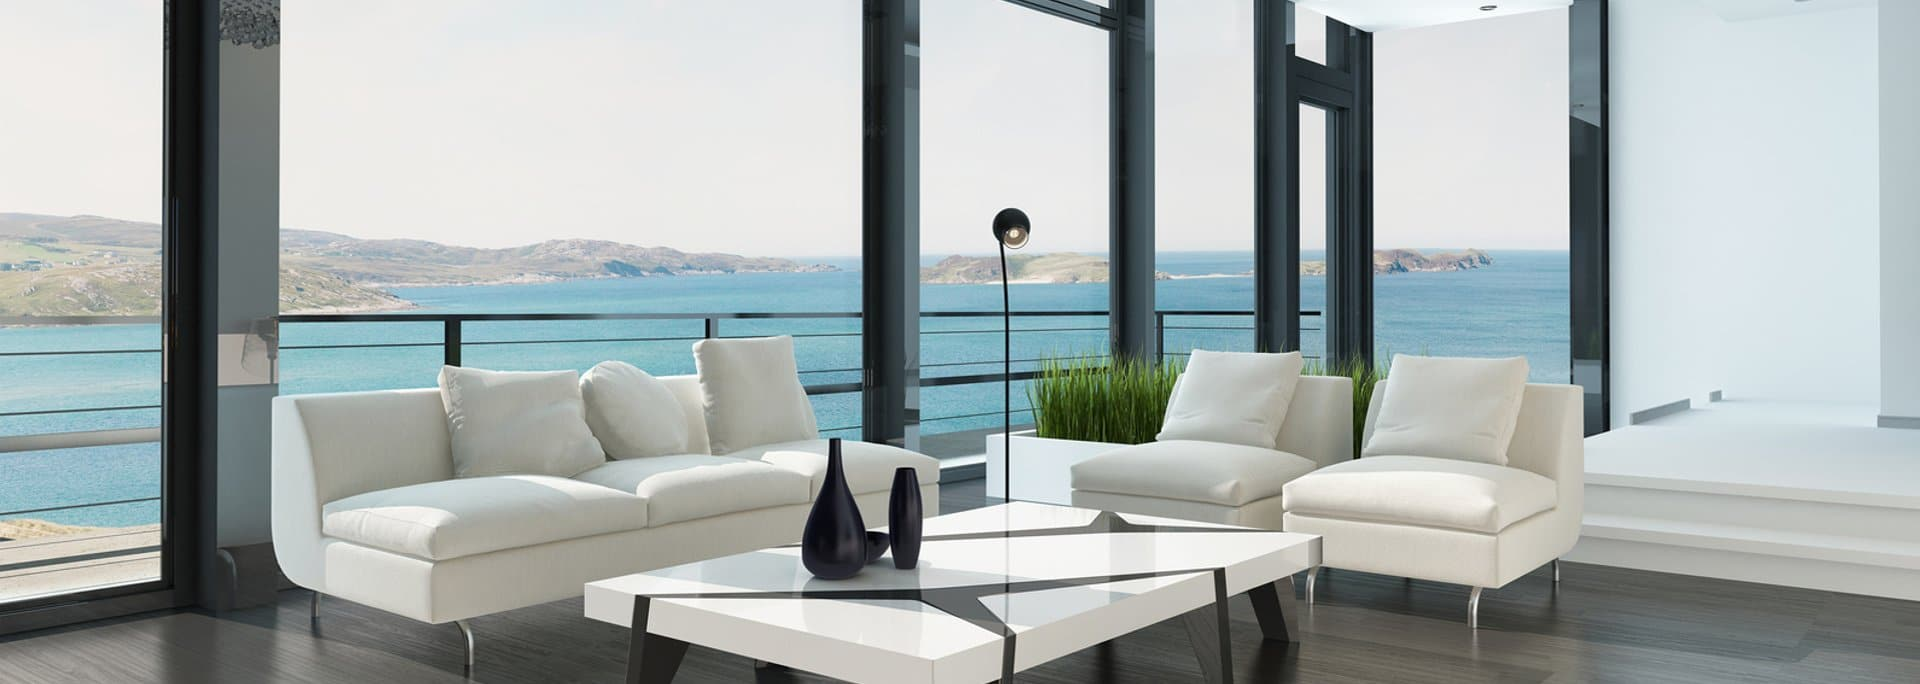 agence immobiliere hyeres.